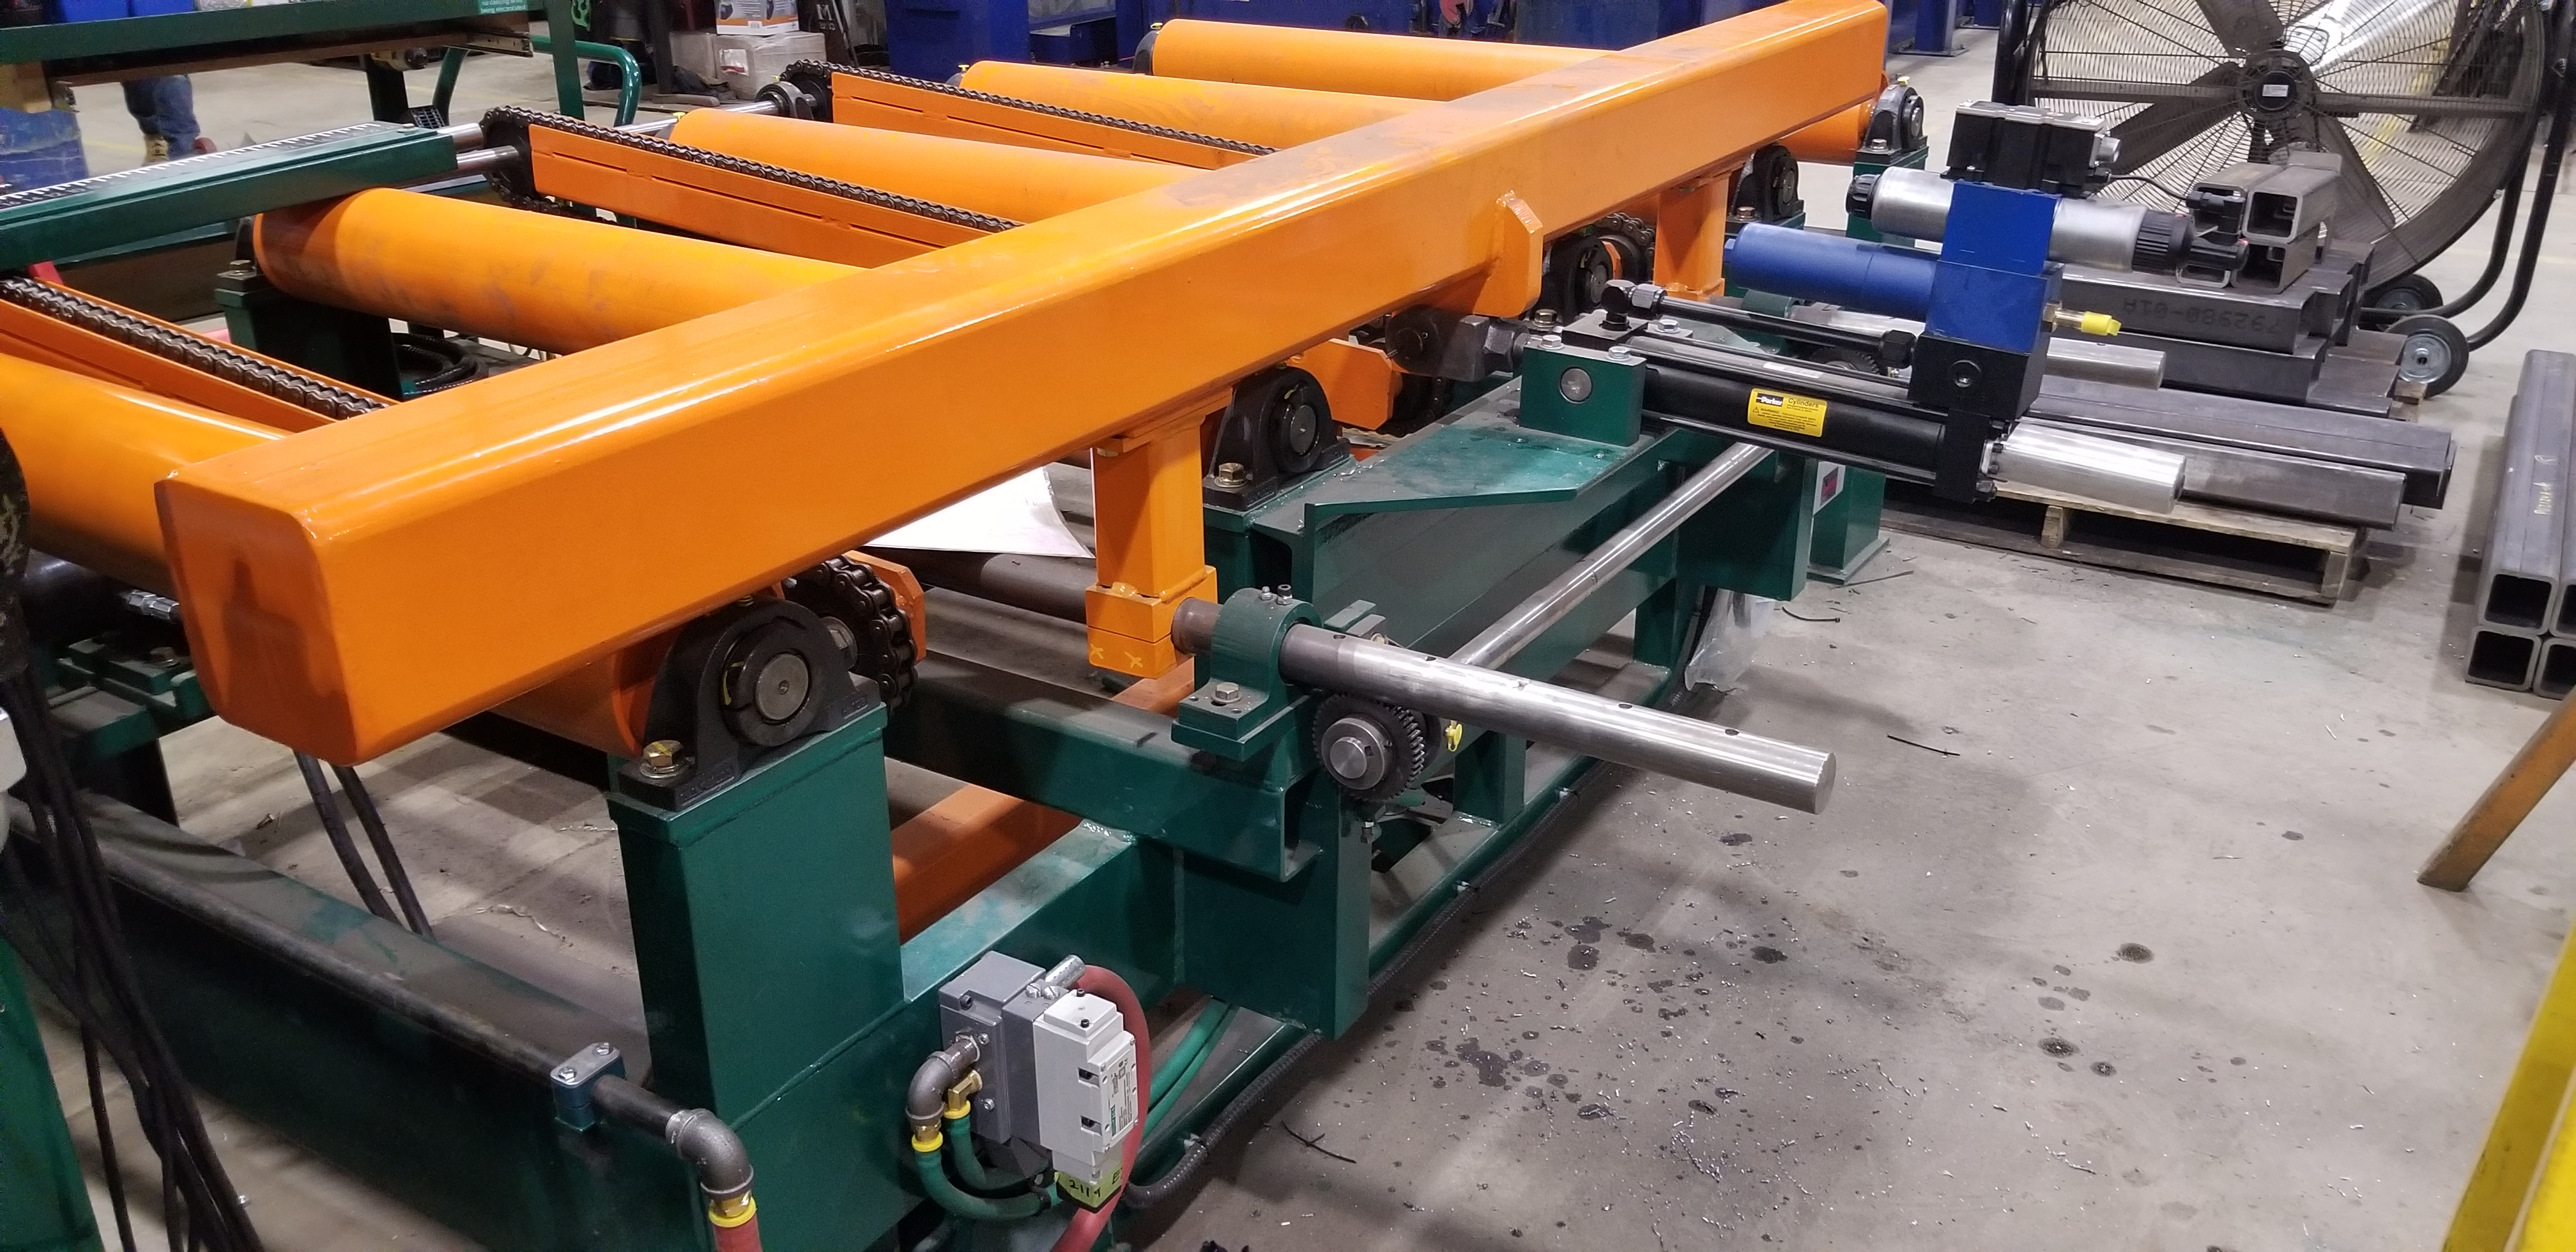 Shifting fence edger infeed table